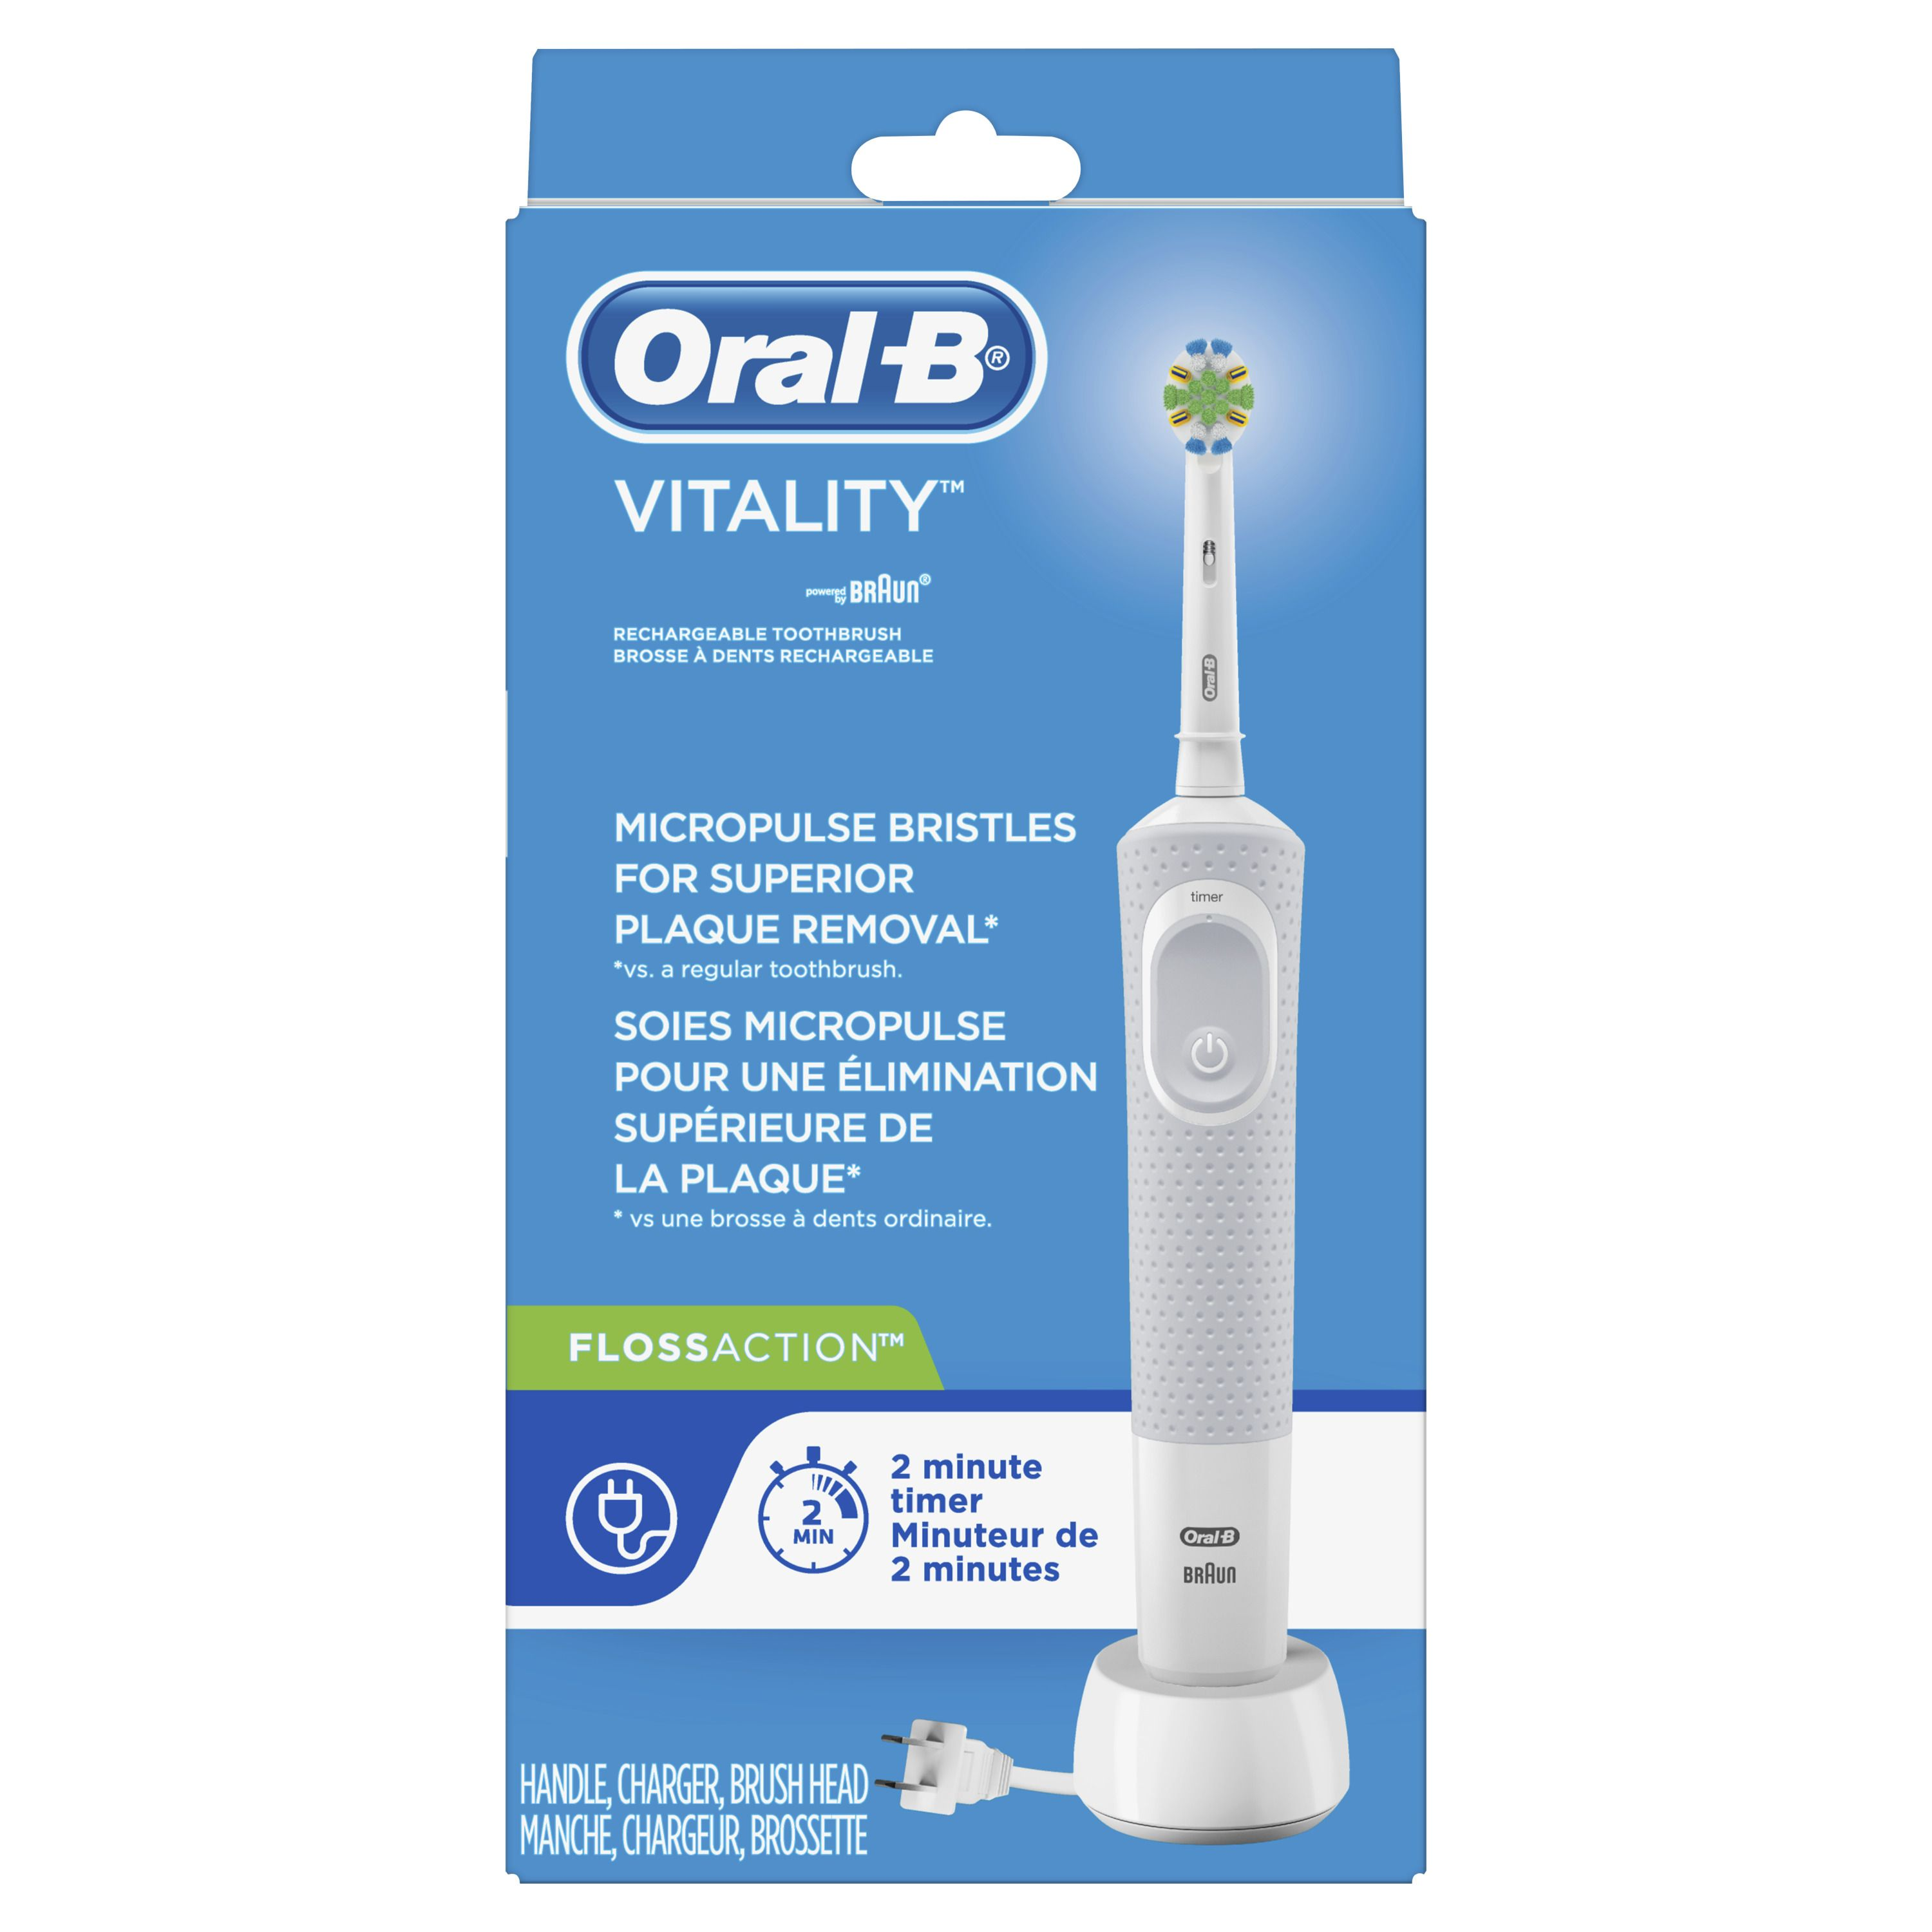 Oral B Vitality Flossaction Electric Toothbrush Rechargeable Walmart Com Oral B Vitality Rechargeable Toothbrush Oral B